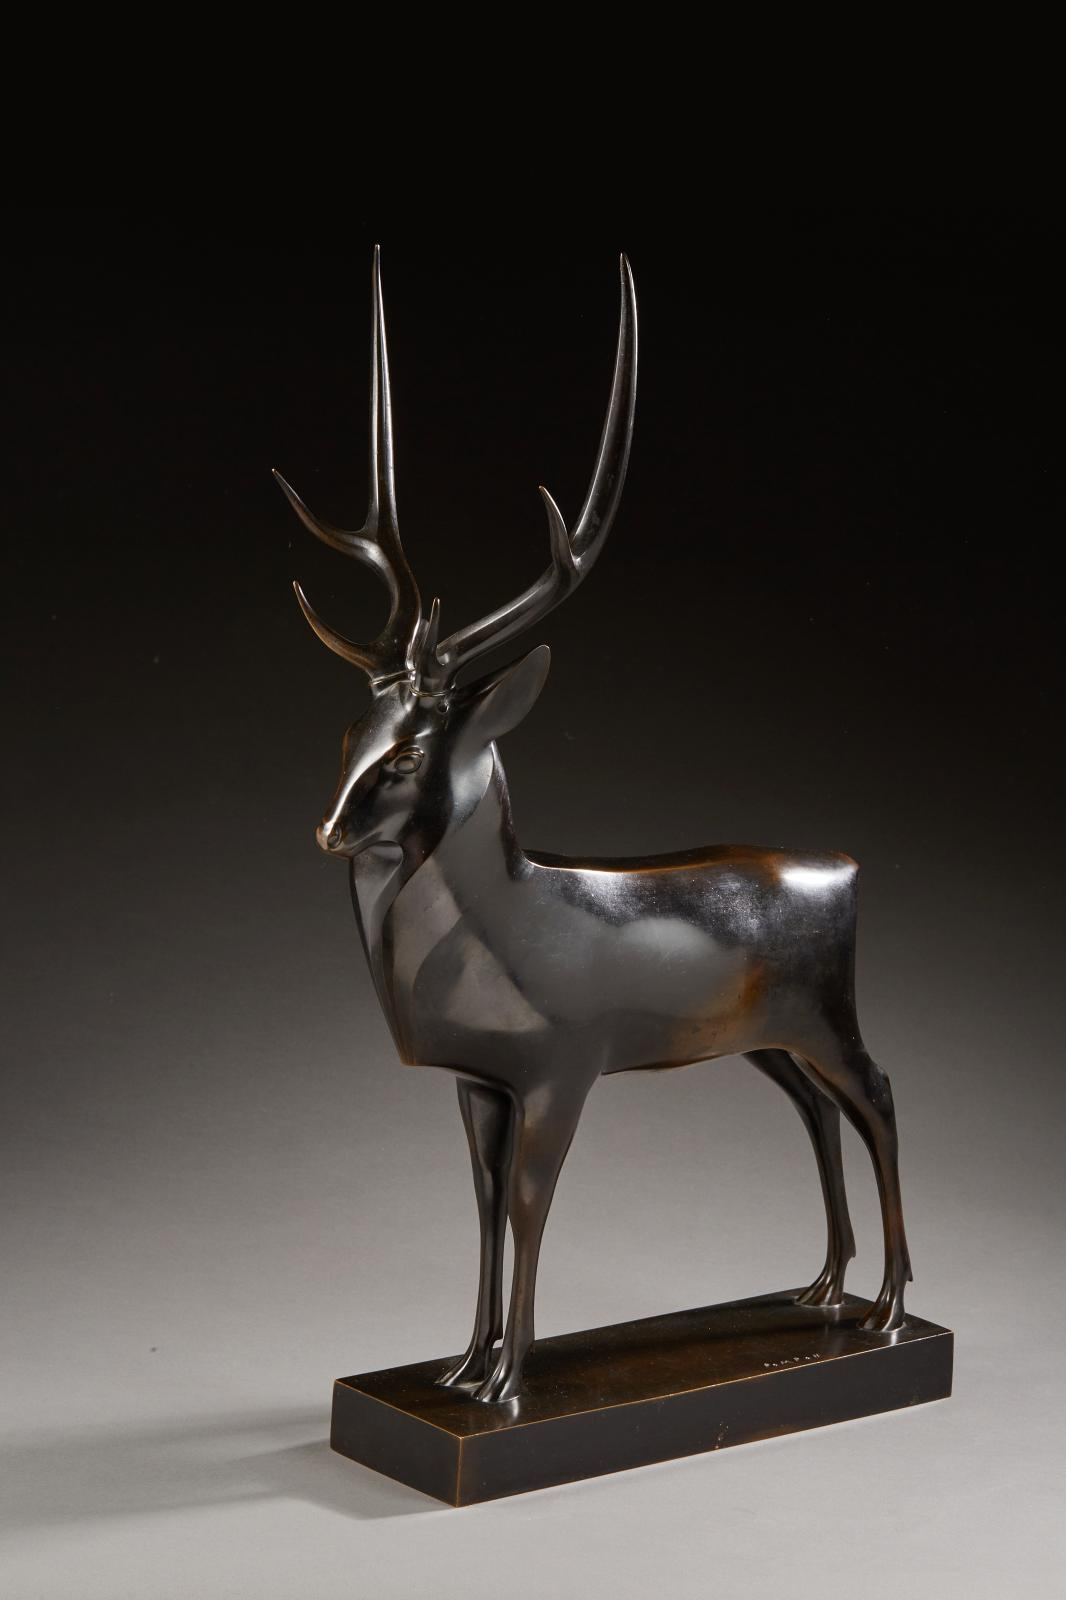 François Pompon (1855-1933)–forged by Andro 1930, Great Stag, model created in 1929, bronze with black patina, brown reflection. Signed on